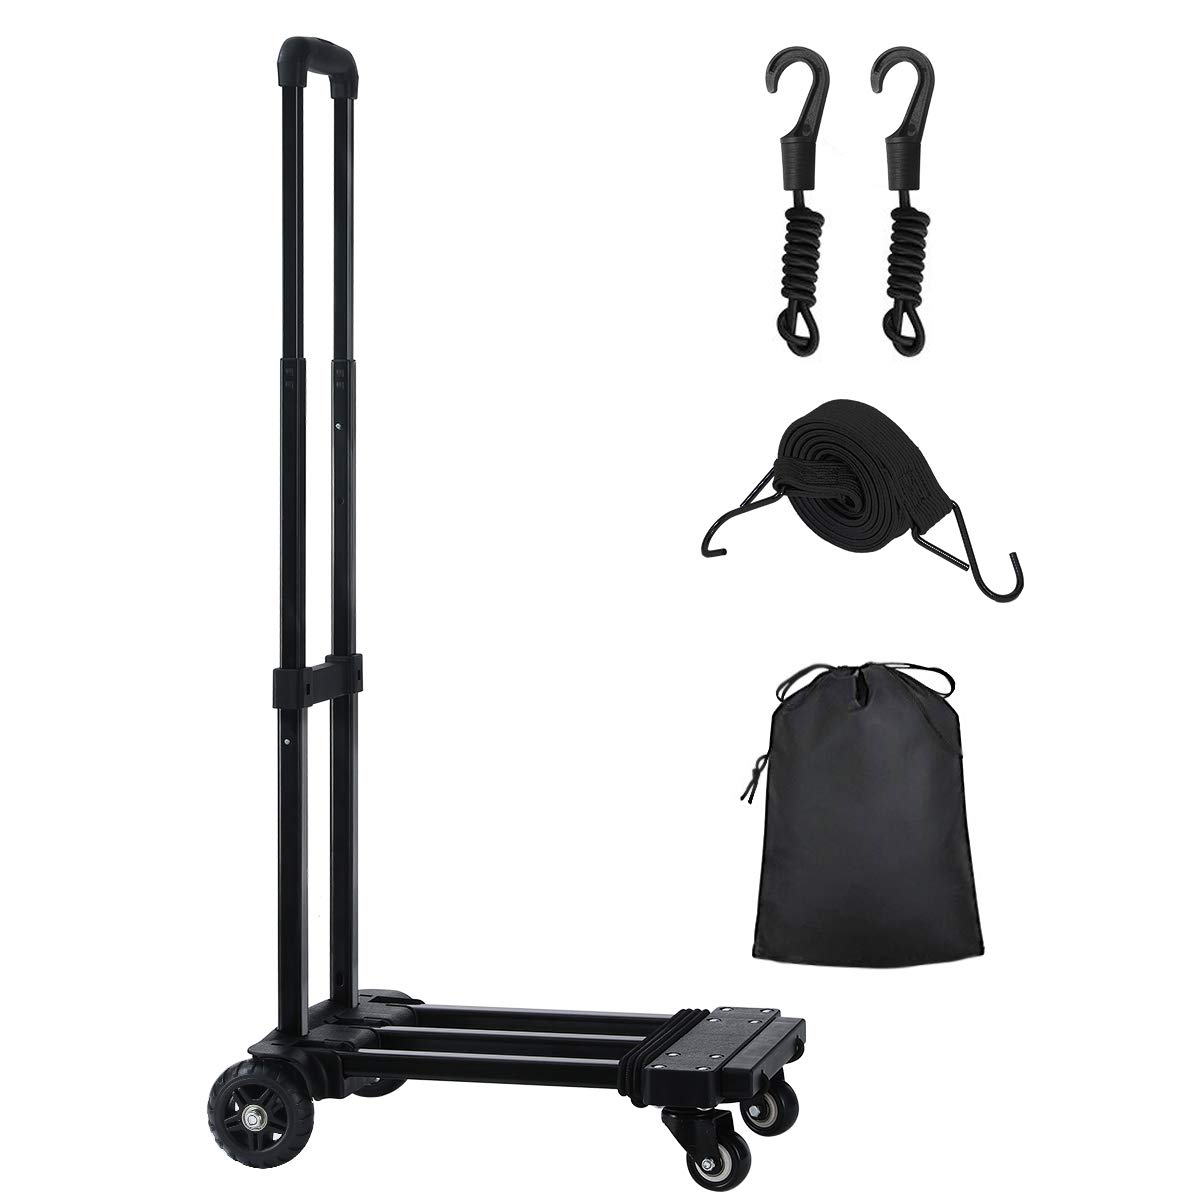 KEDSUM Folding Hand Truck, 155 lbs, 4 Wheels Solid Construction Heavy Duty Utility Cart, Portable Fold Up Dolly, Compact and Lightweight for Luggage, Personal, Travel, Moving and Office Use